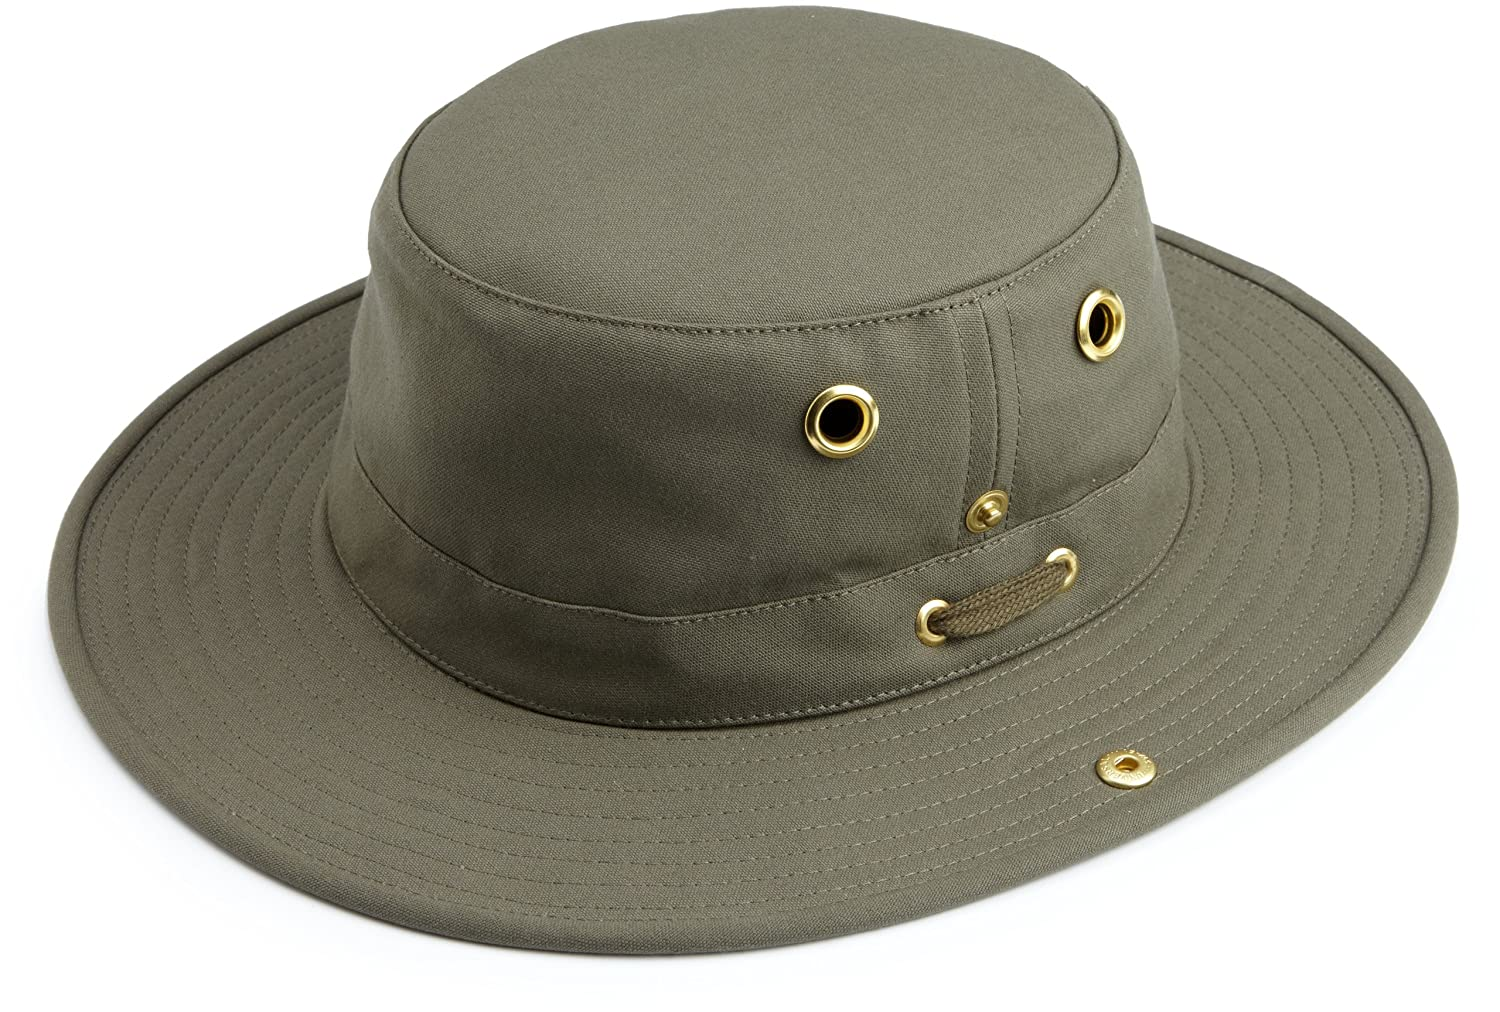 80ab8a70e81 Amazon.com  Tilley Endurables T3 Traditional Canvas Hat  Sports   Outdoors